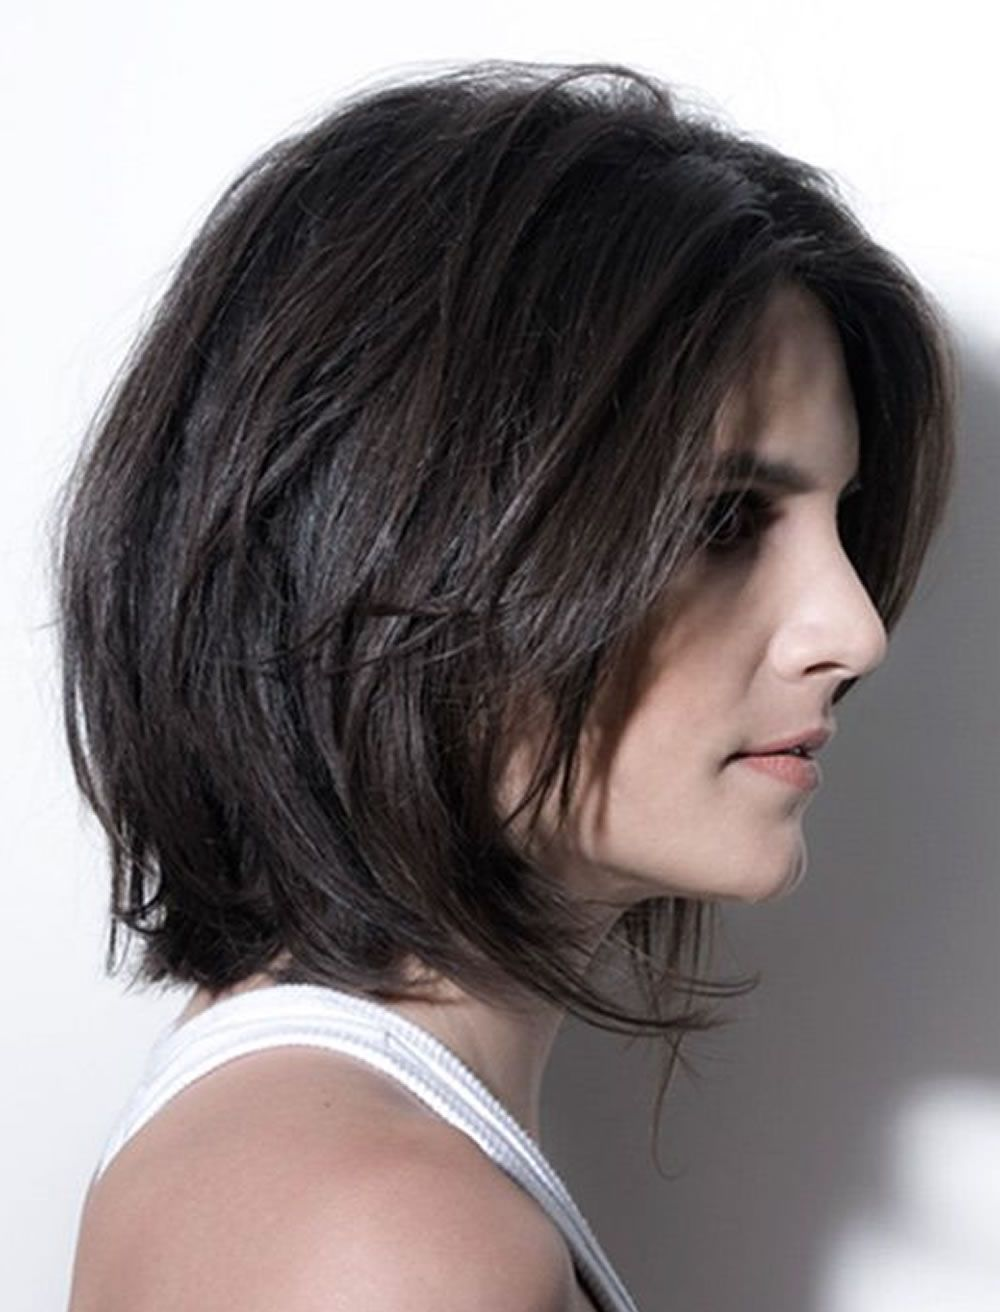 image result for 2018 hair trends female | haircuts | pinterest